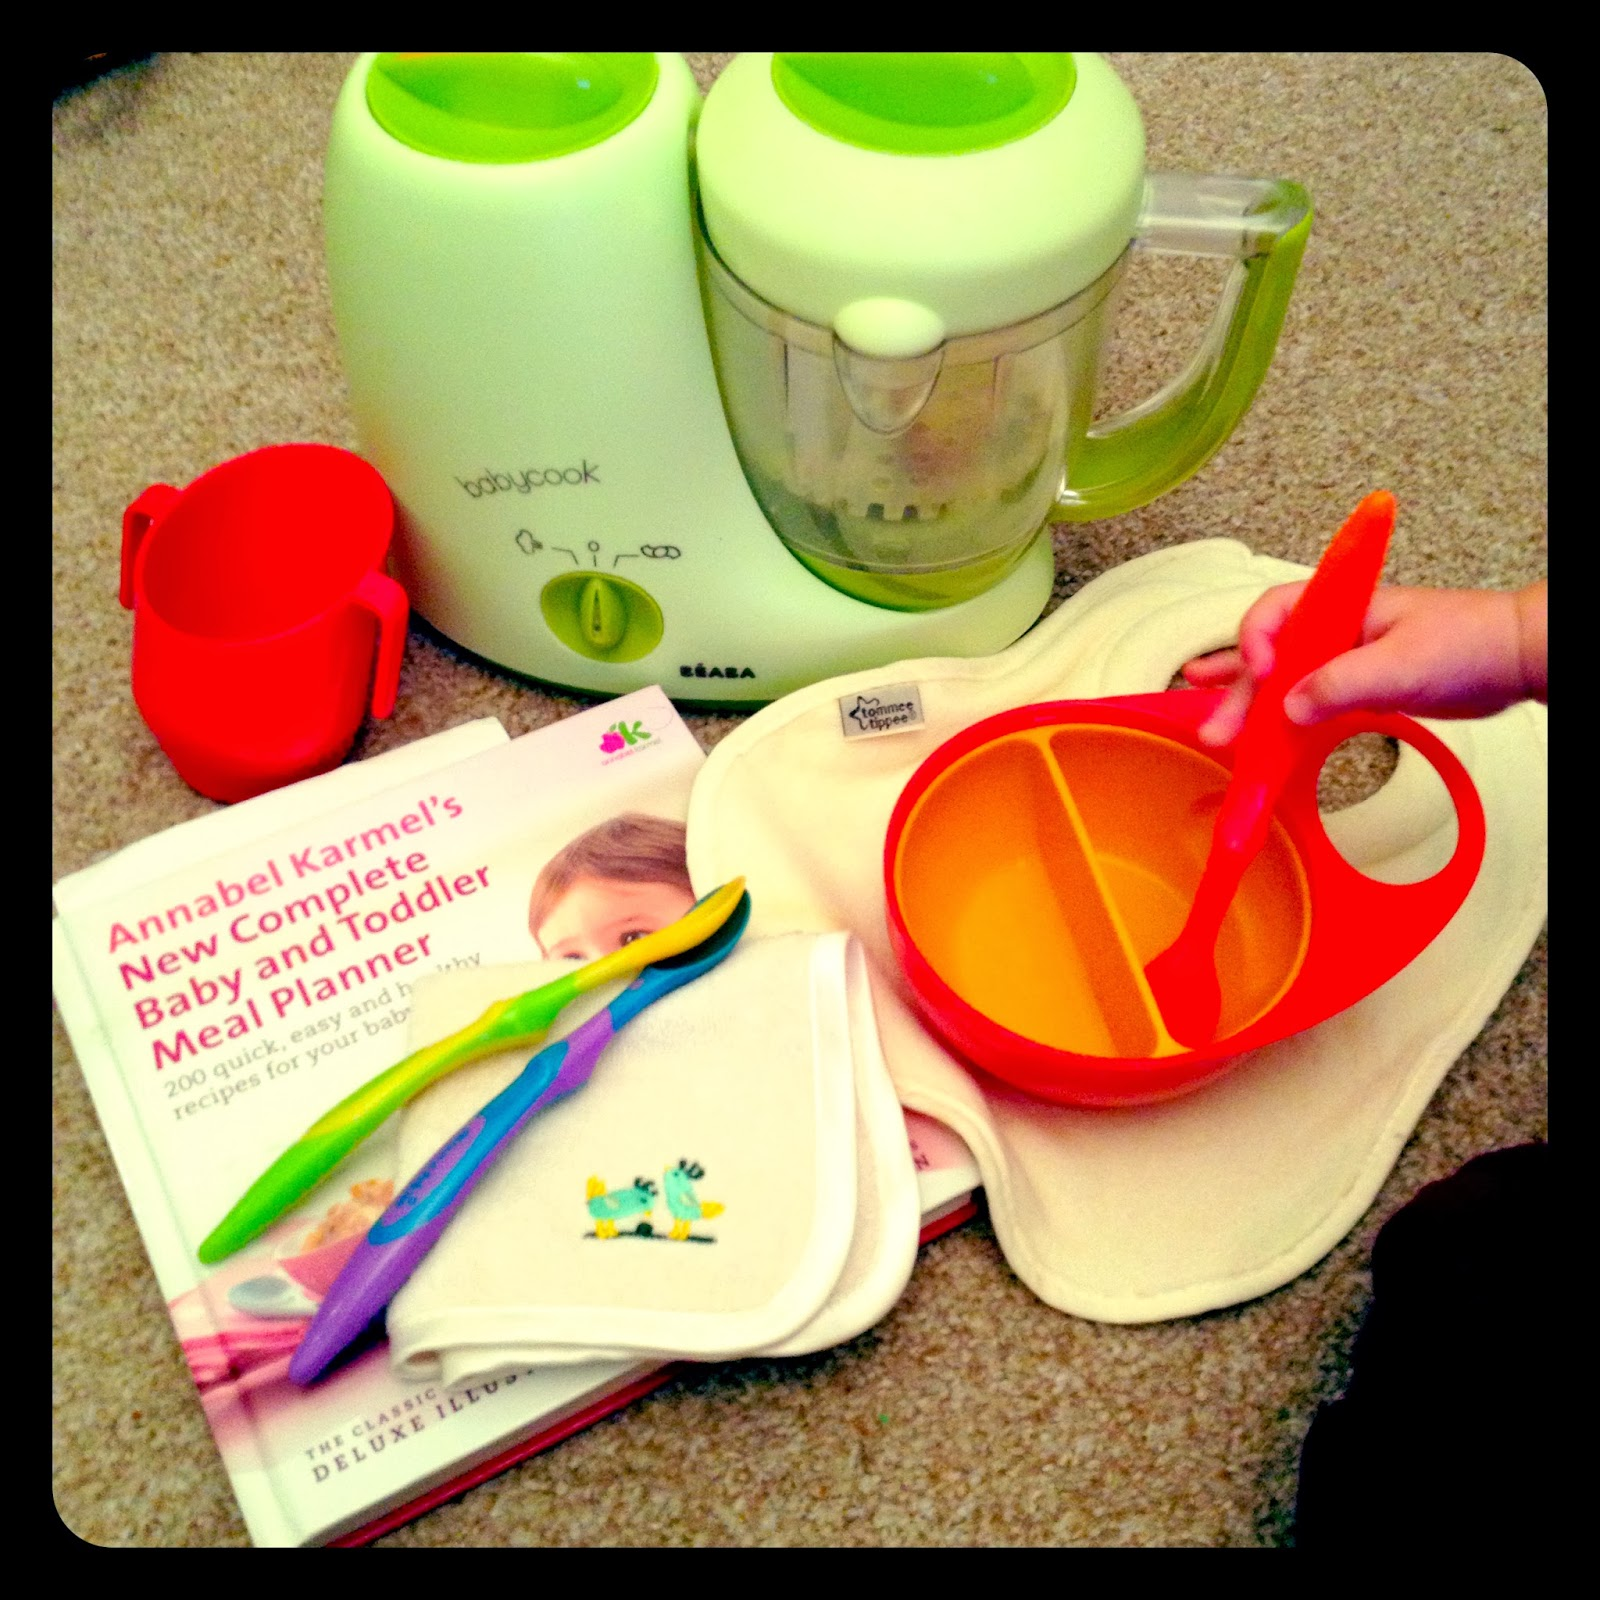 mamasVIB   V. I. BAKE: Weaning made easy! My top 10 tips and must-have buys, V. I. BASICS   Weaning made easy   baby feeding   first tastes   baby led weaning   food for babies   weaning   weaning essentials   mamasVIB